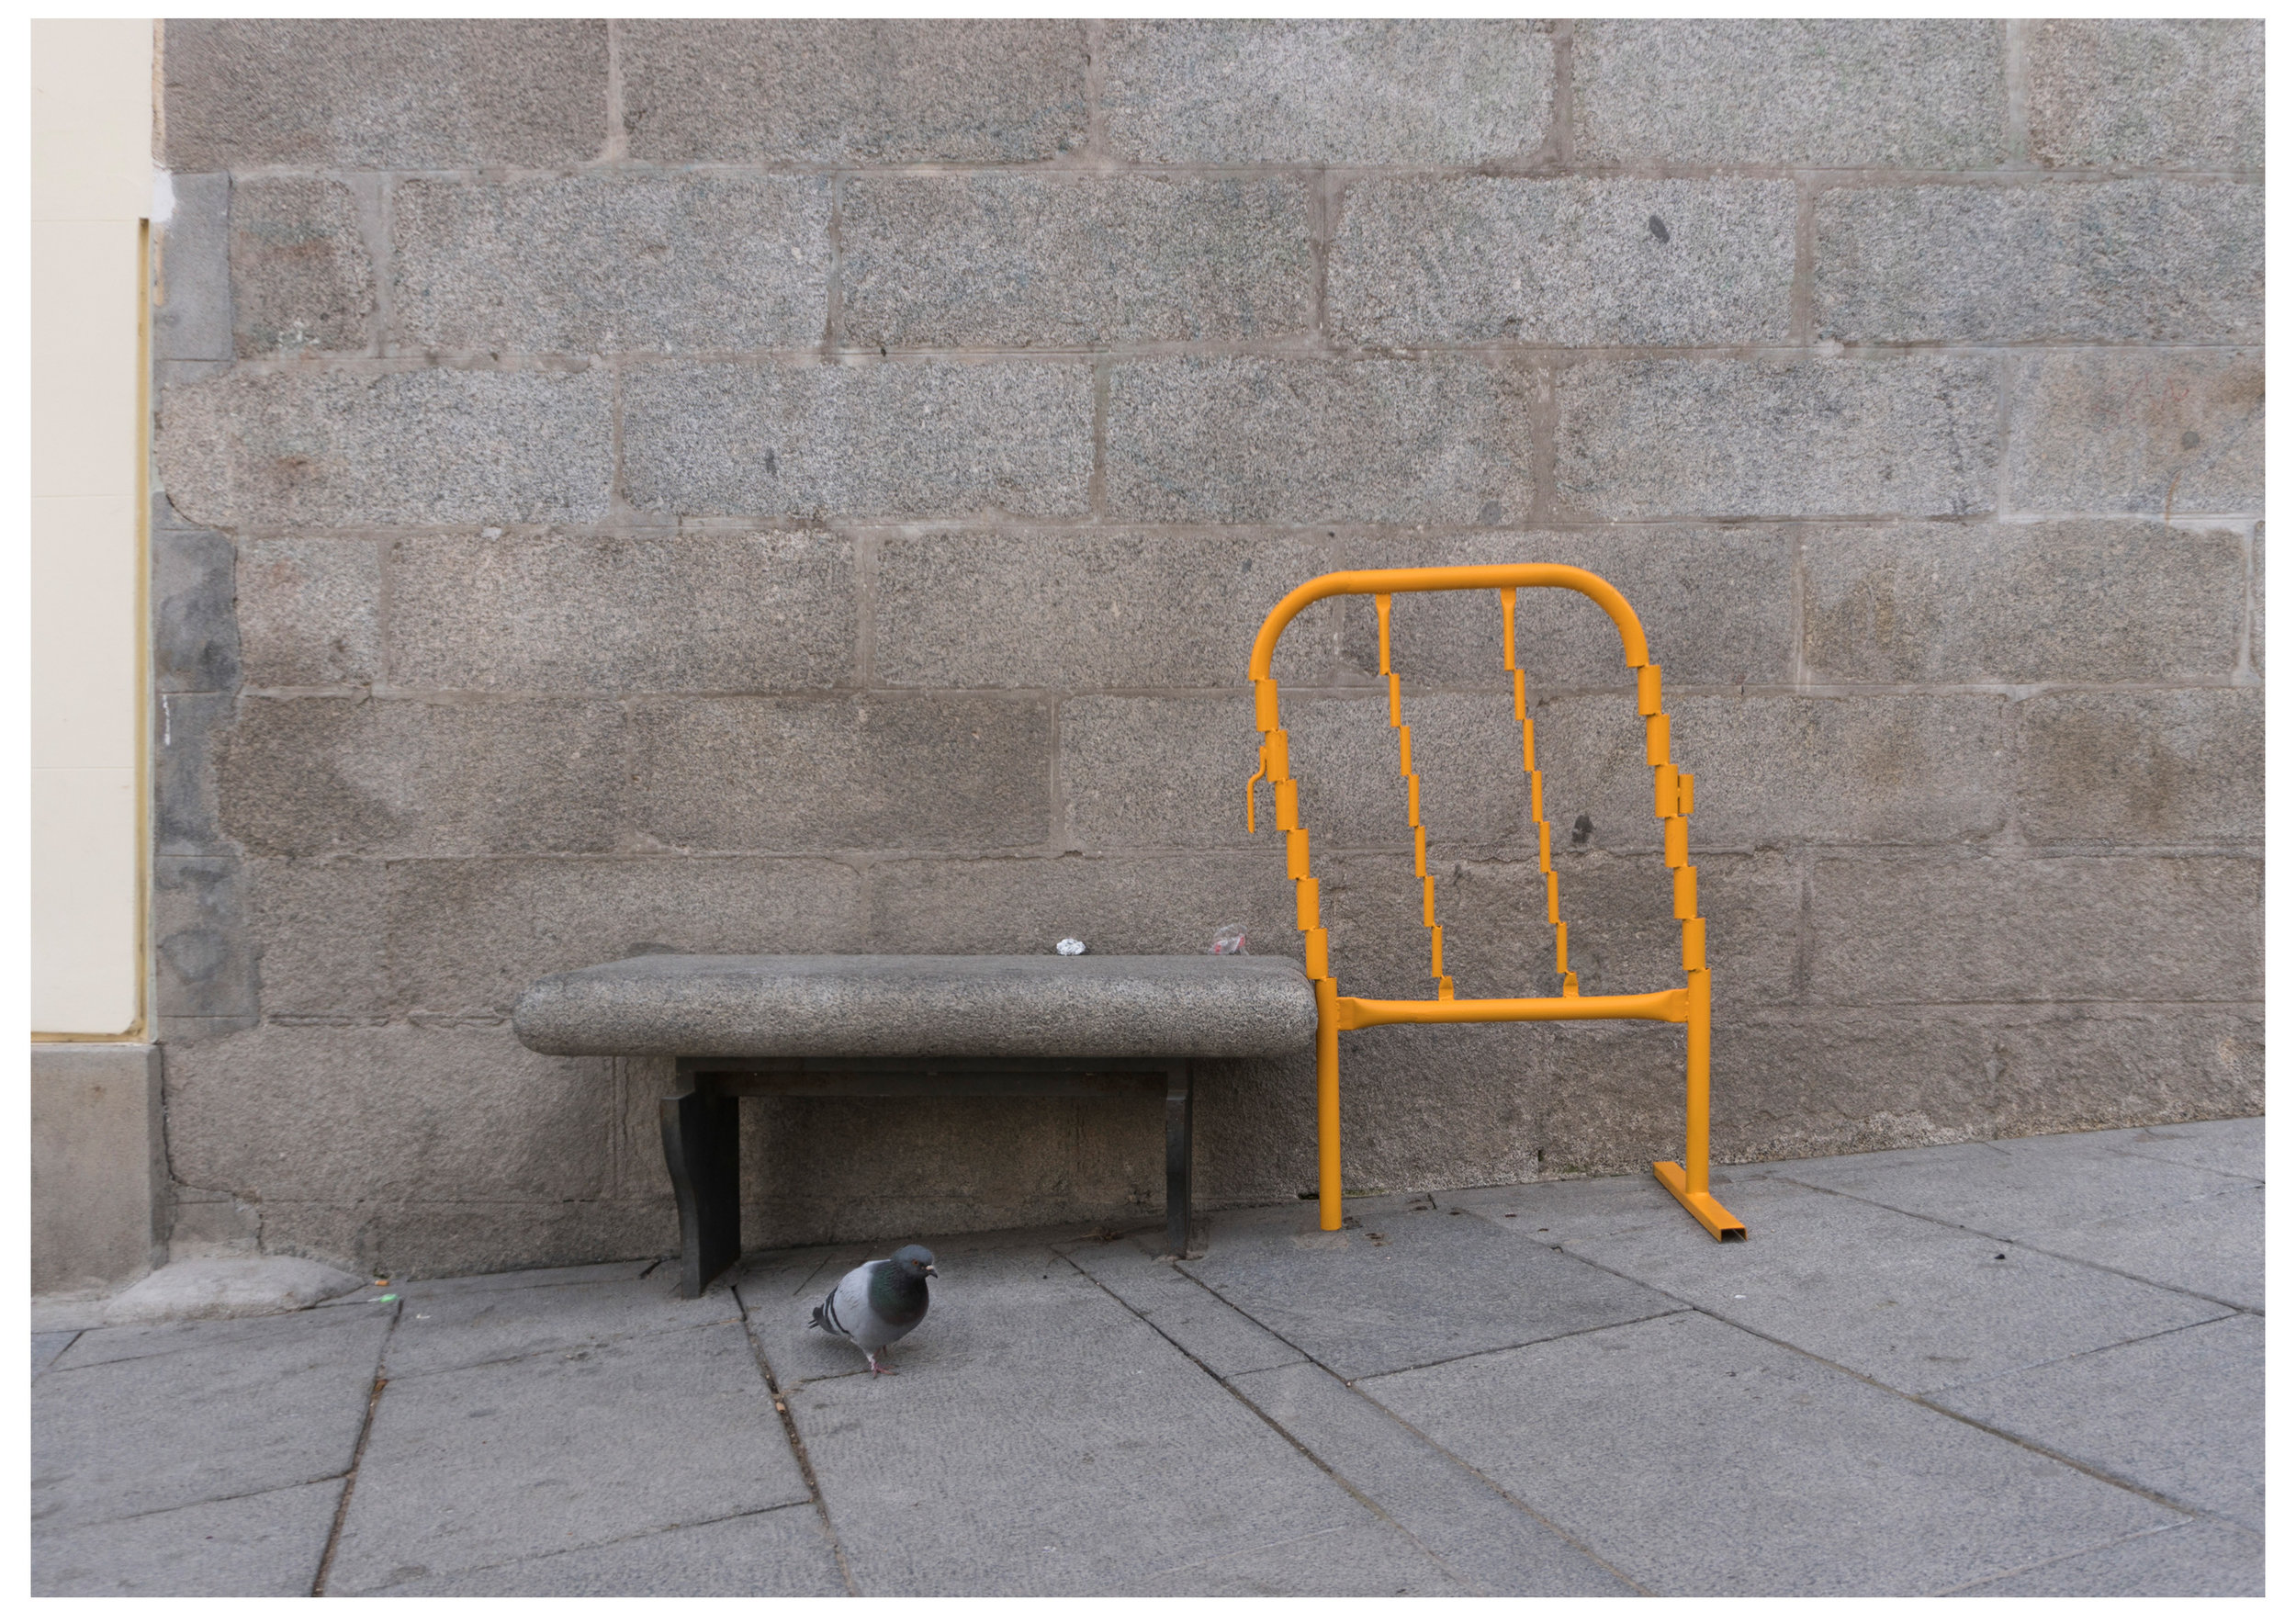 About an apparently unsecure glitchy intense yellow fence tending to rest on a presumably established cold in winter too warm in summer stone bench placed in an old steep square in Madrid